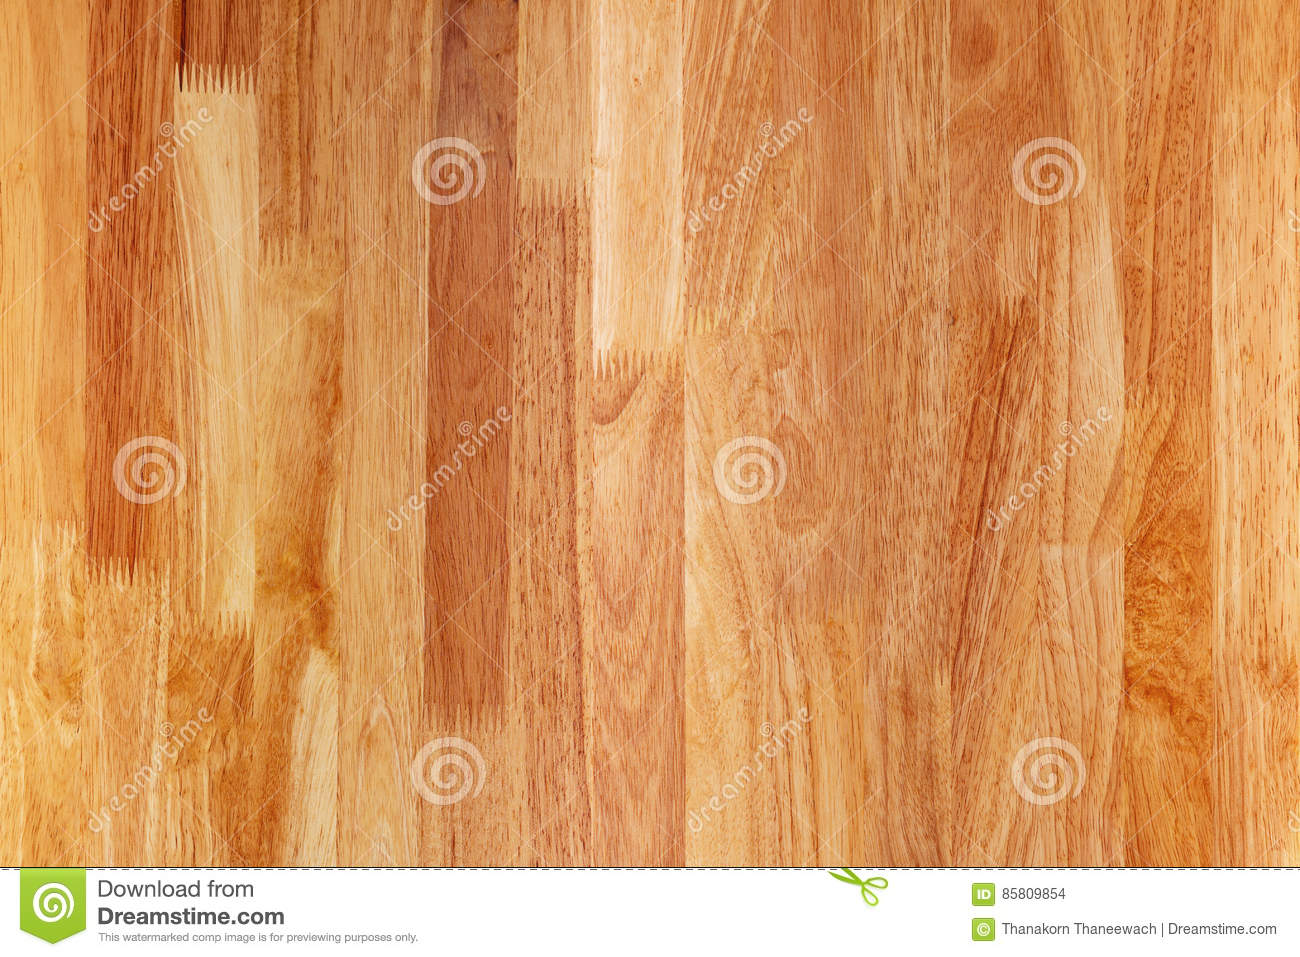 Wood texture wooden plank - Wood Texture Background Or Wooden Plank Texture Stock Photo